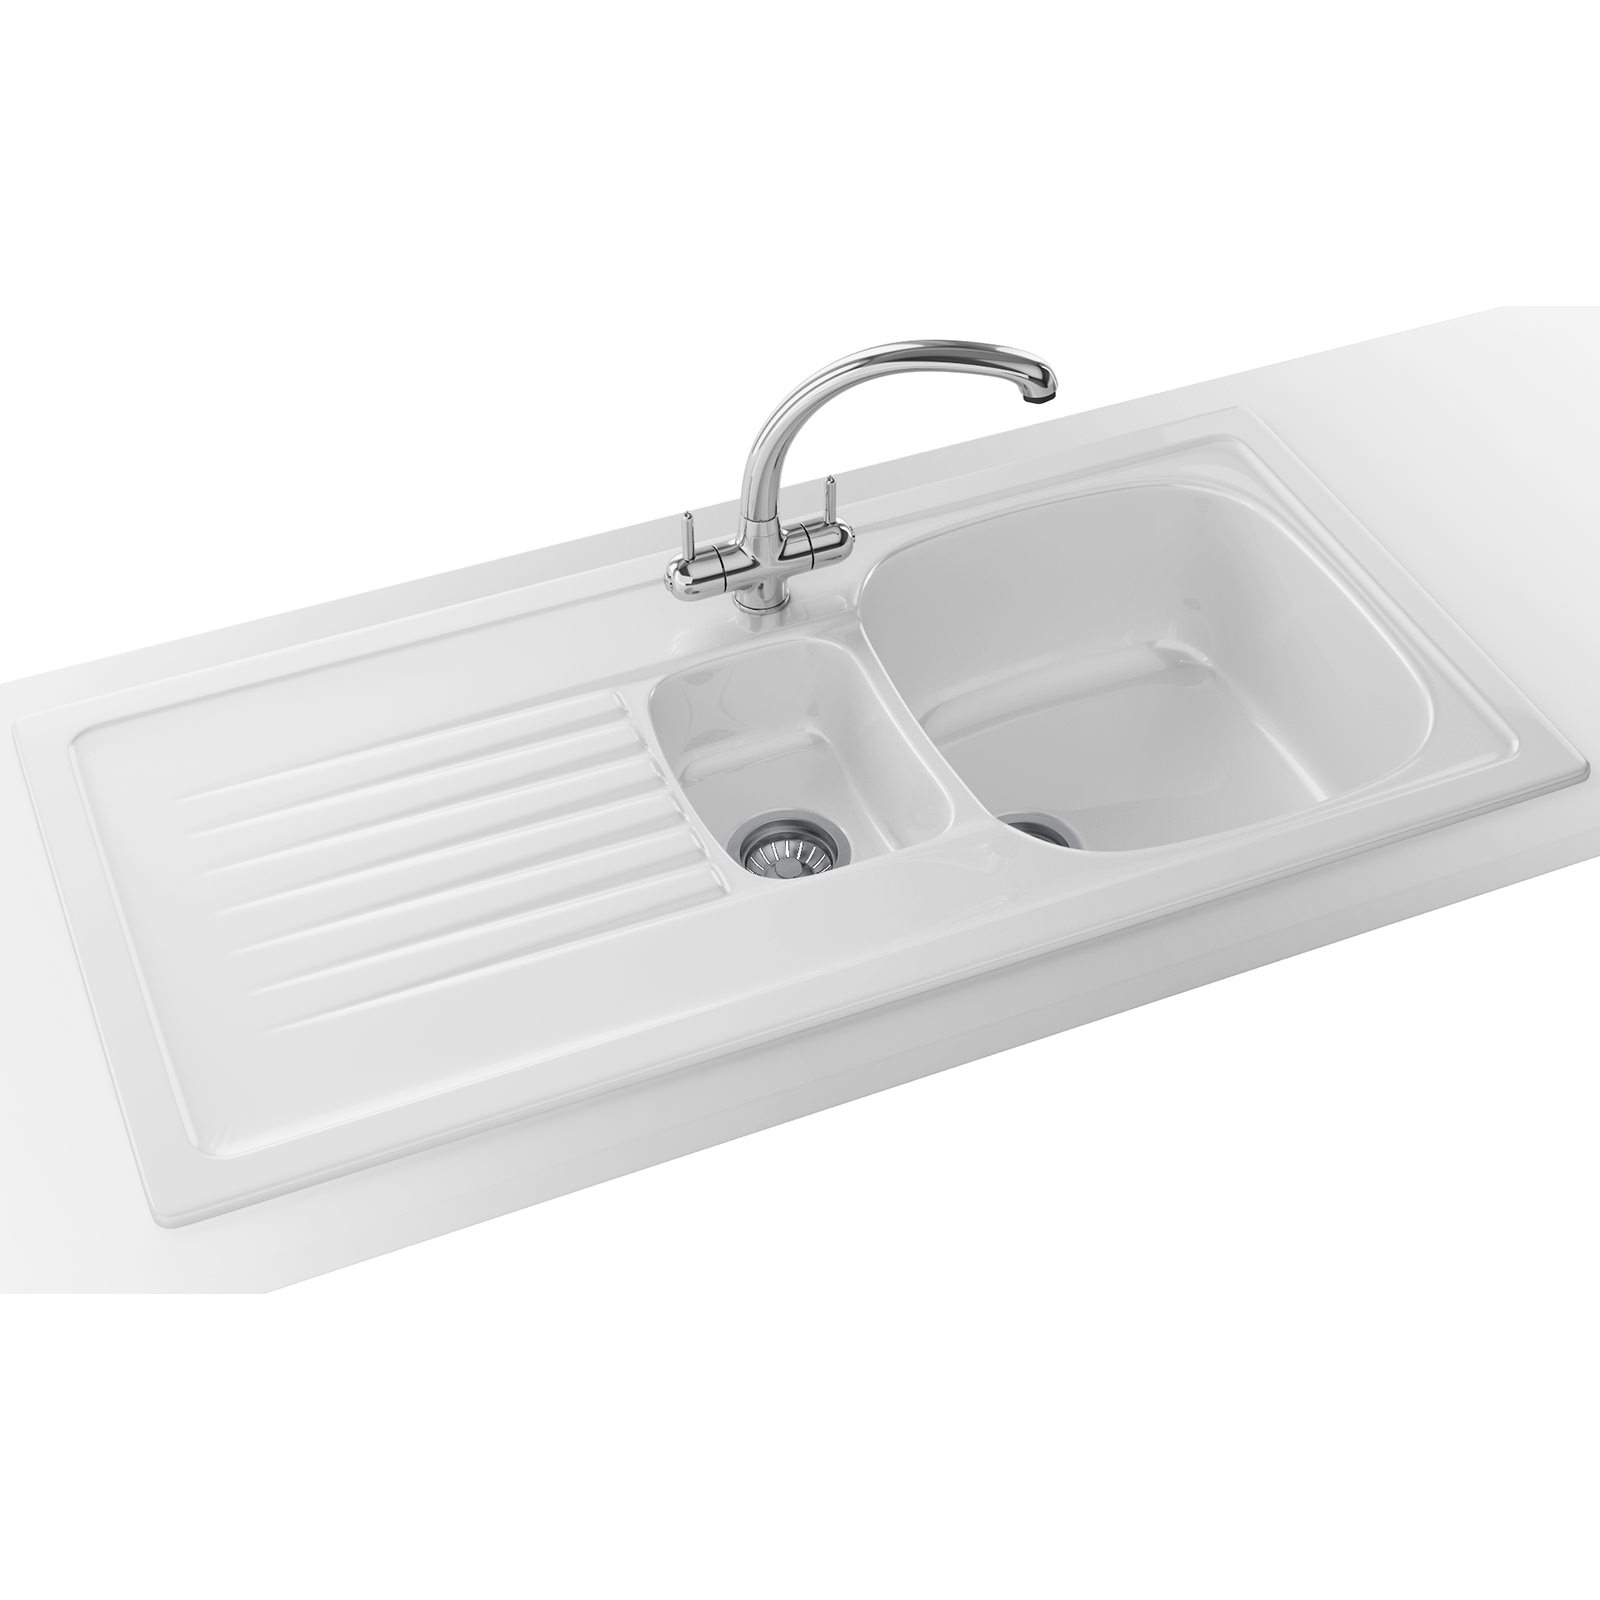 Franke Elba Propack ELK 651 Ceramic White Kitchen Inset Sink And Tap